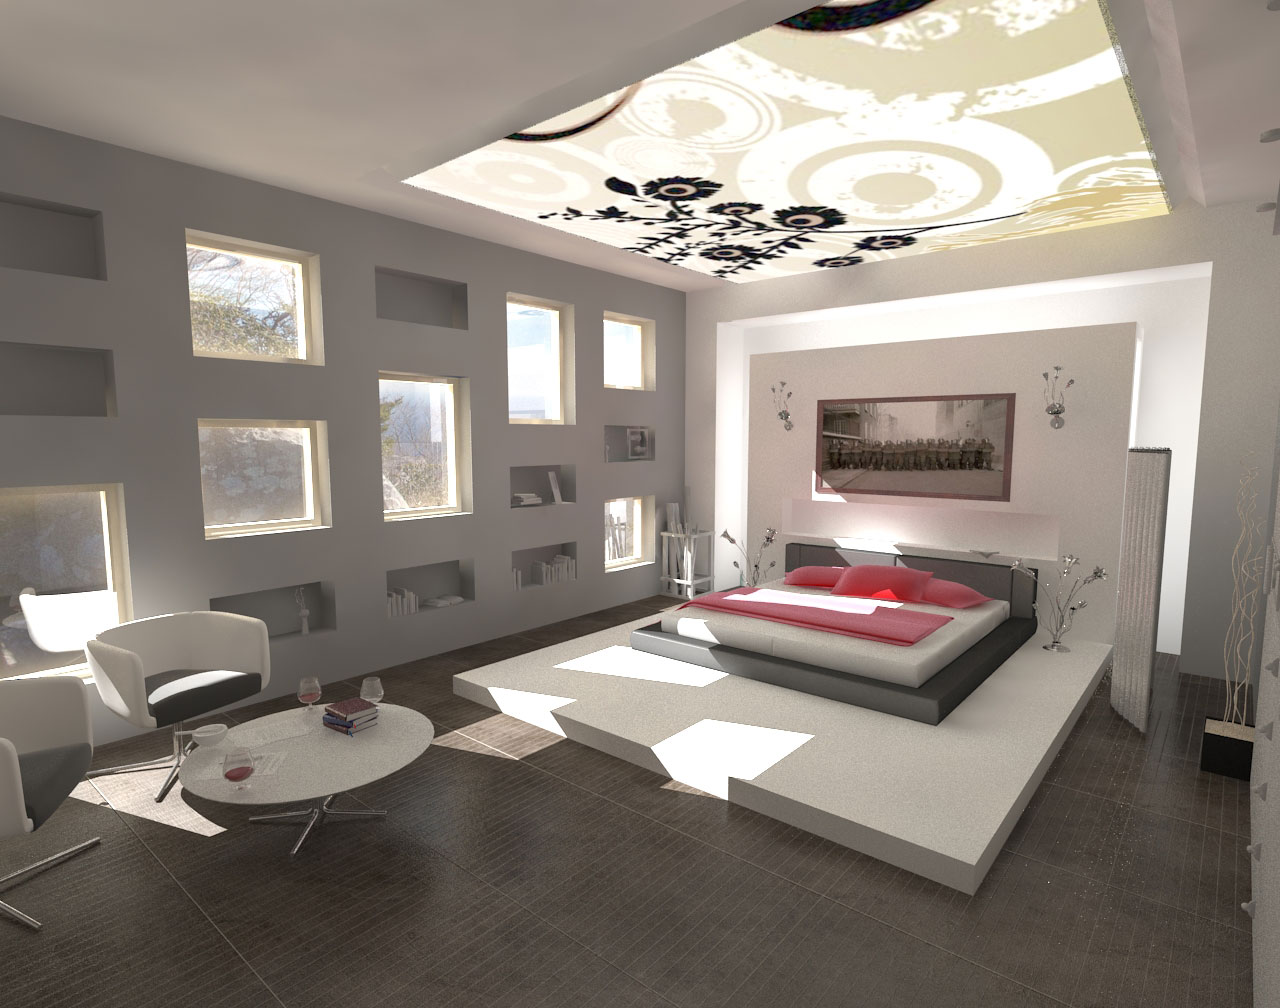 Decorations minimalist design modern bedroom interior Home interior design bedroom